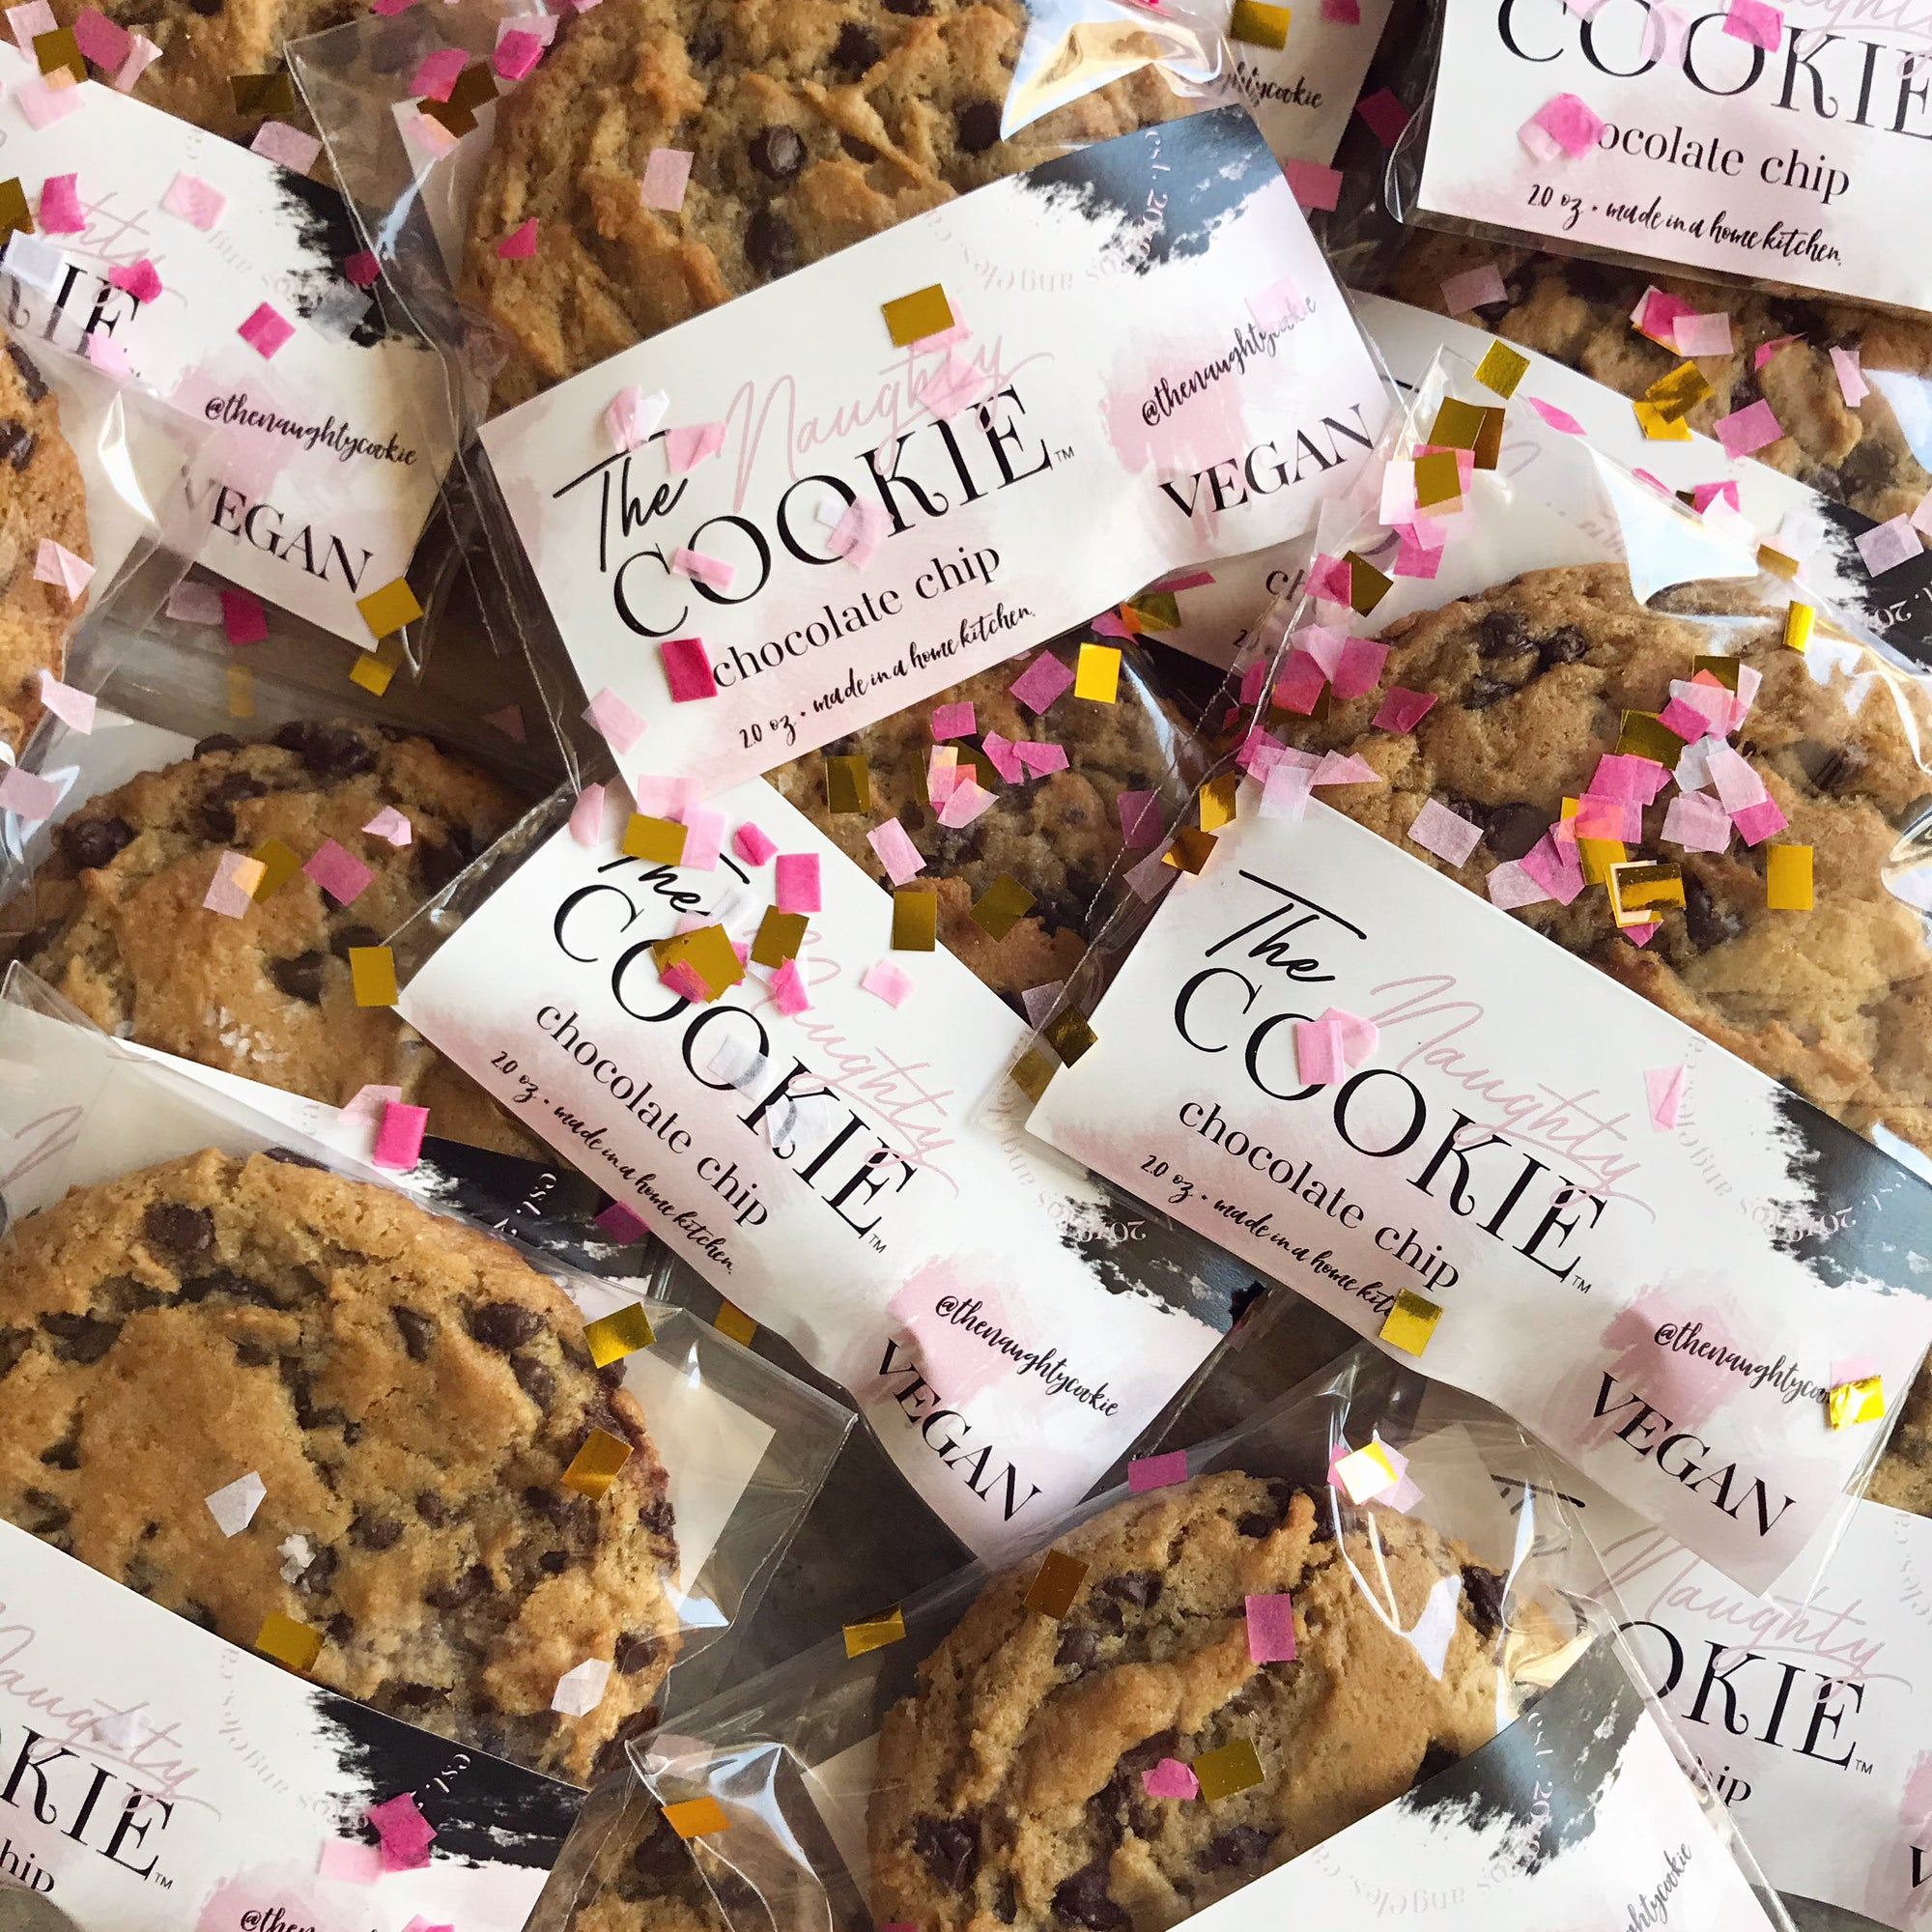 The Naughty Cookie Vegan Chocolate Chip Cookies. Nationwide Shipping Available. Cookies that ship nationwide. Pre-packaged vegan cookies. Chocolate Chips. Confetti.